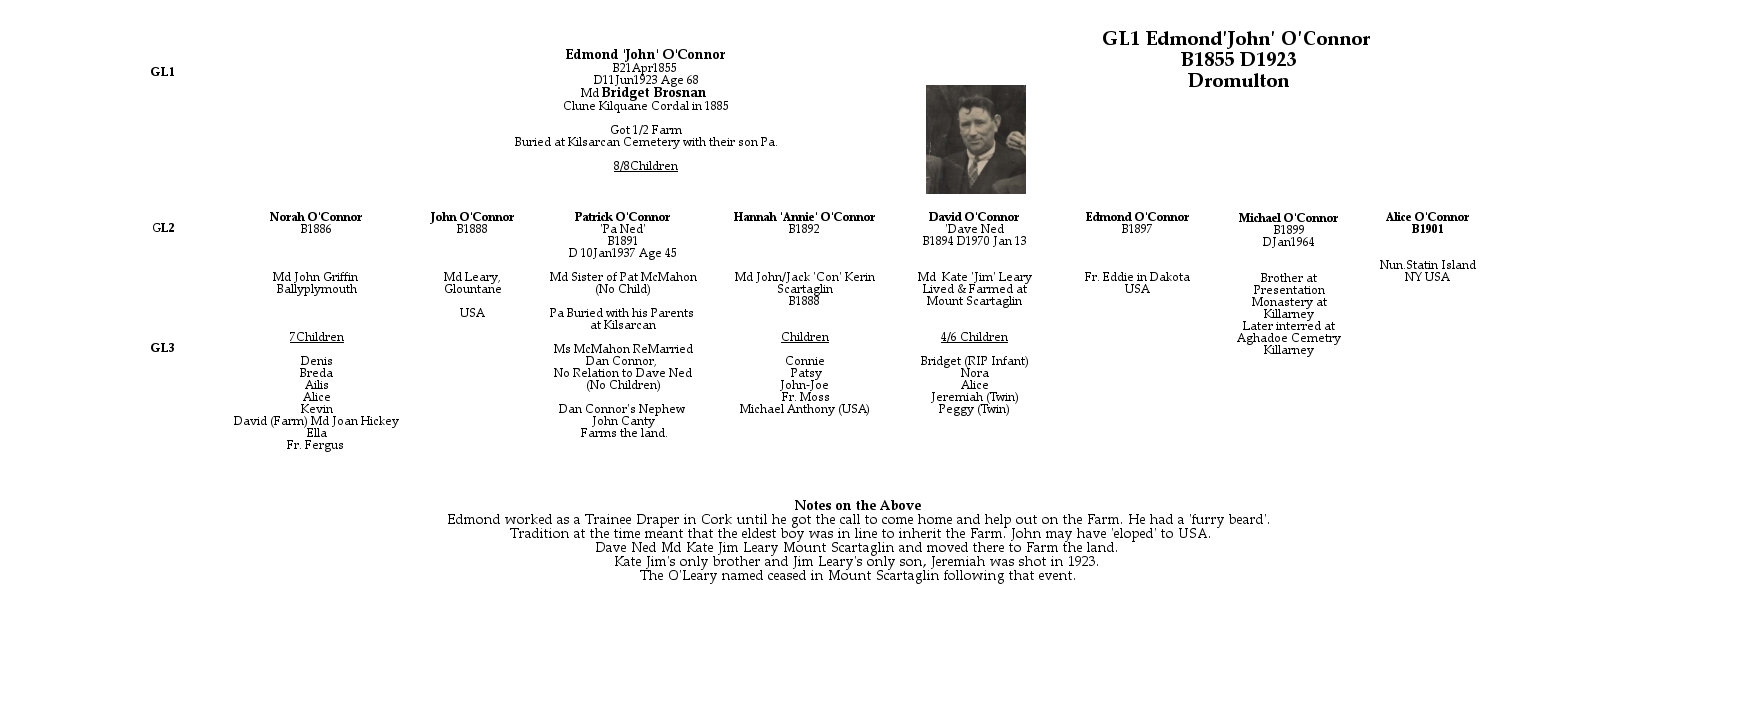 GL1 Edmond John O'Connor & Bridget Brosnan